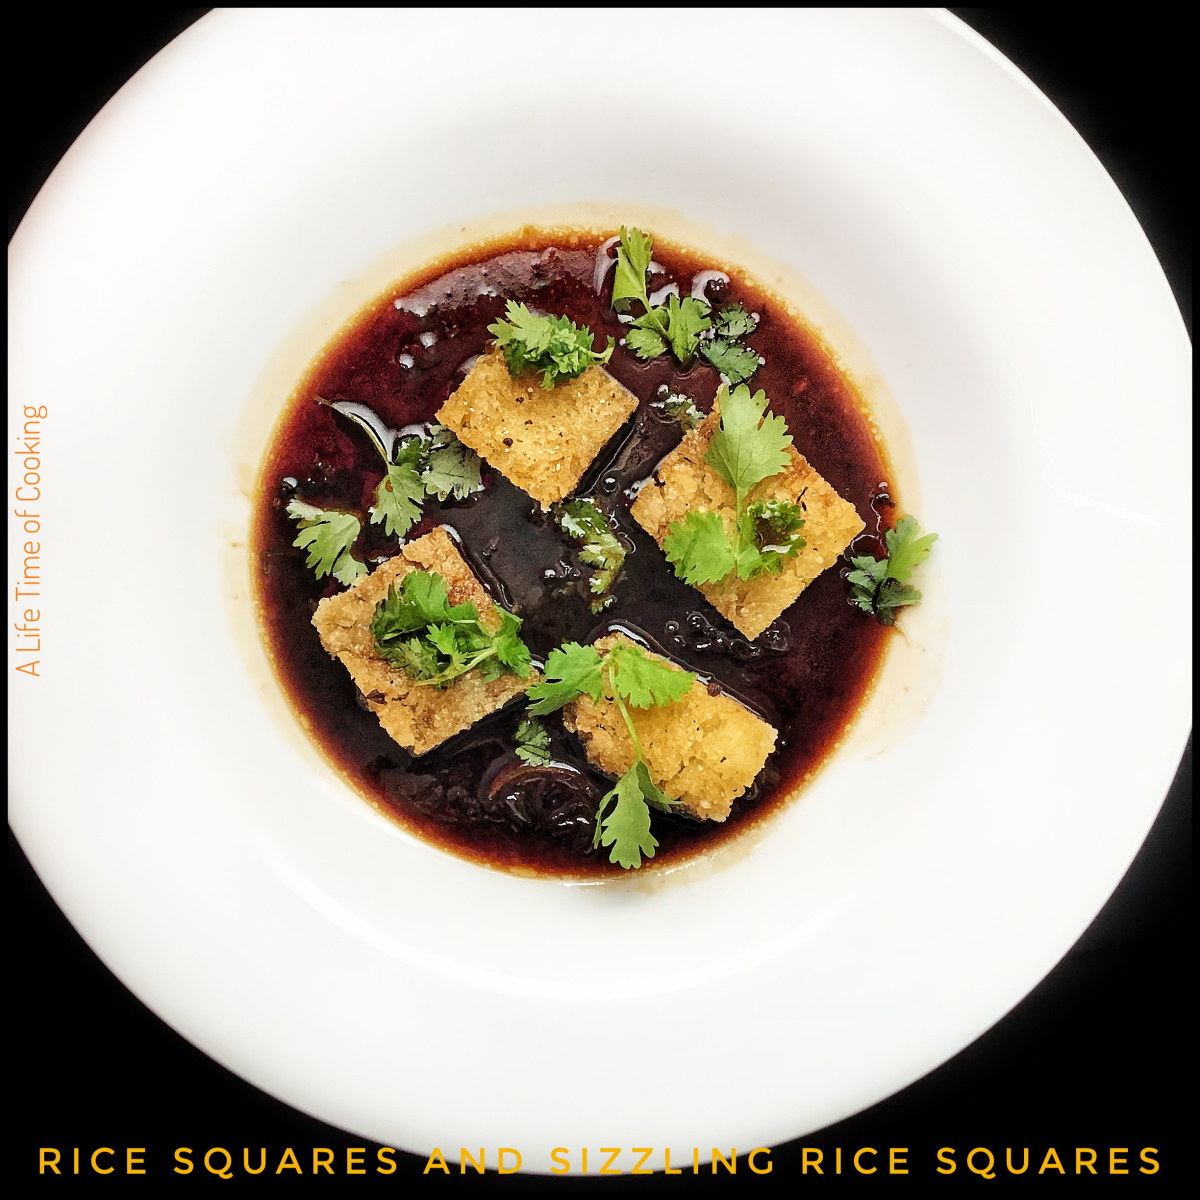 Quick Rice Squares and Sizzling Rice Squares in Dipping Sauce